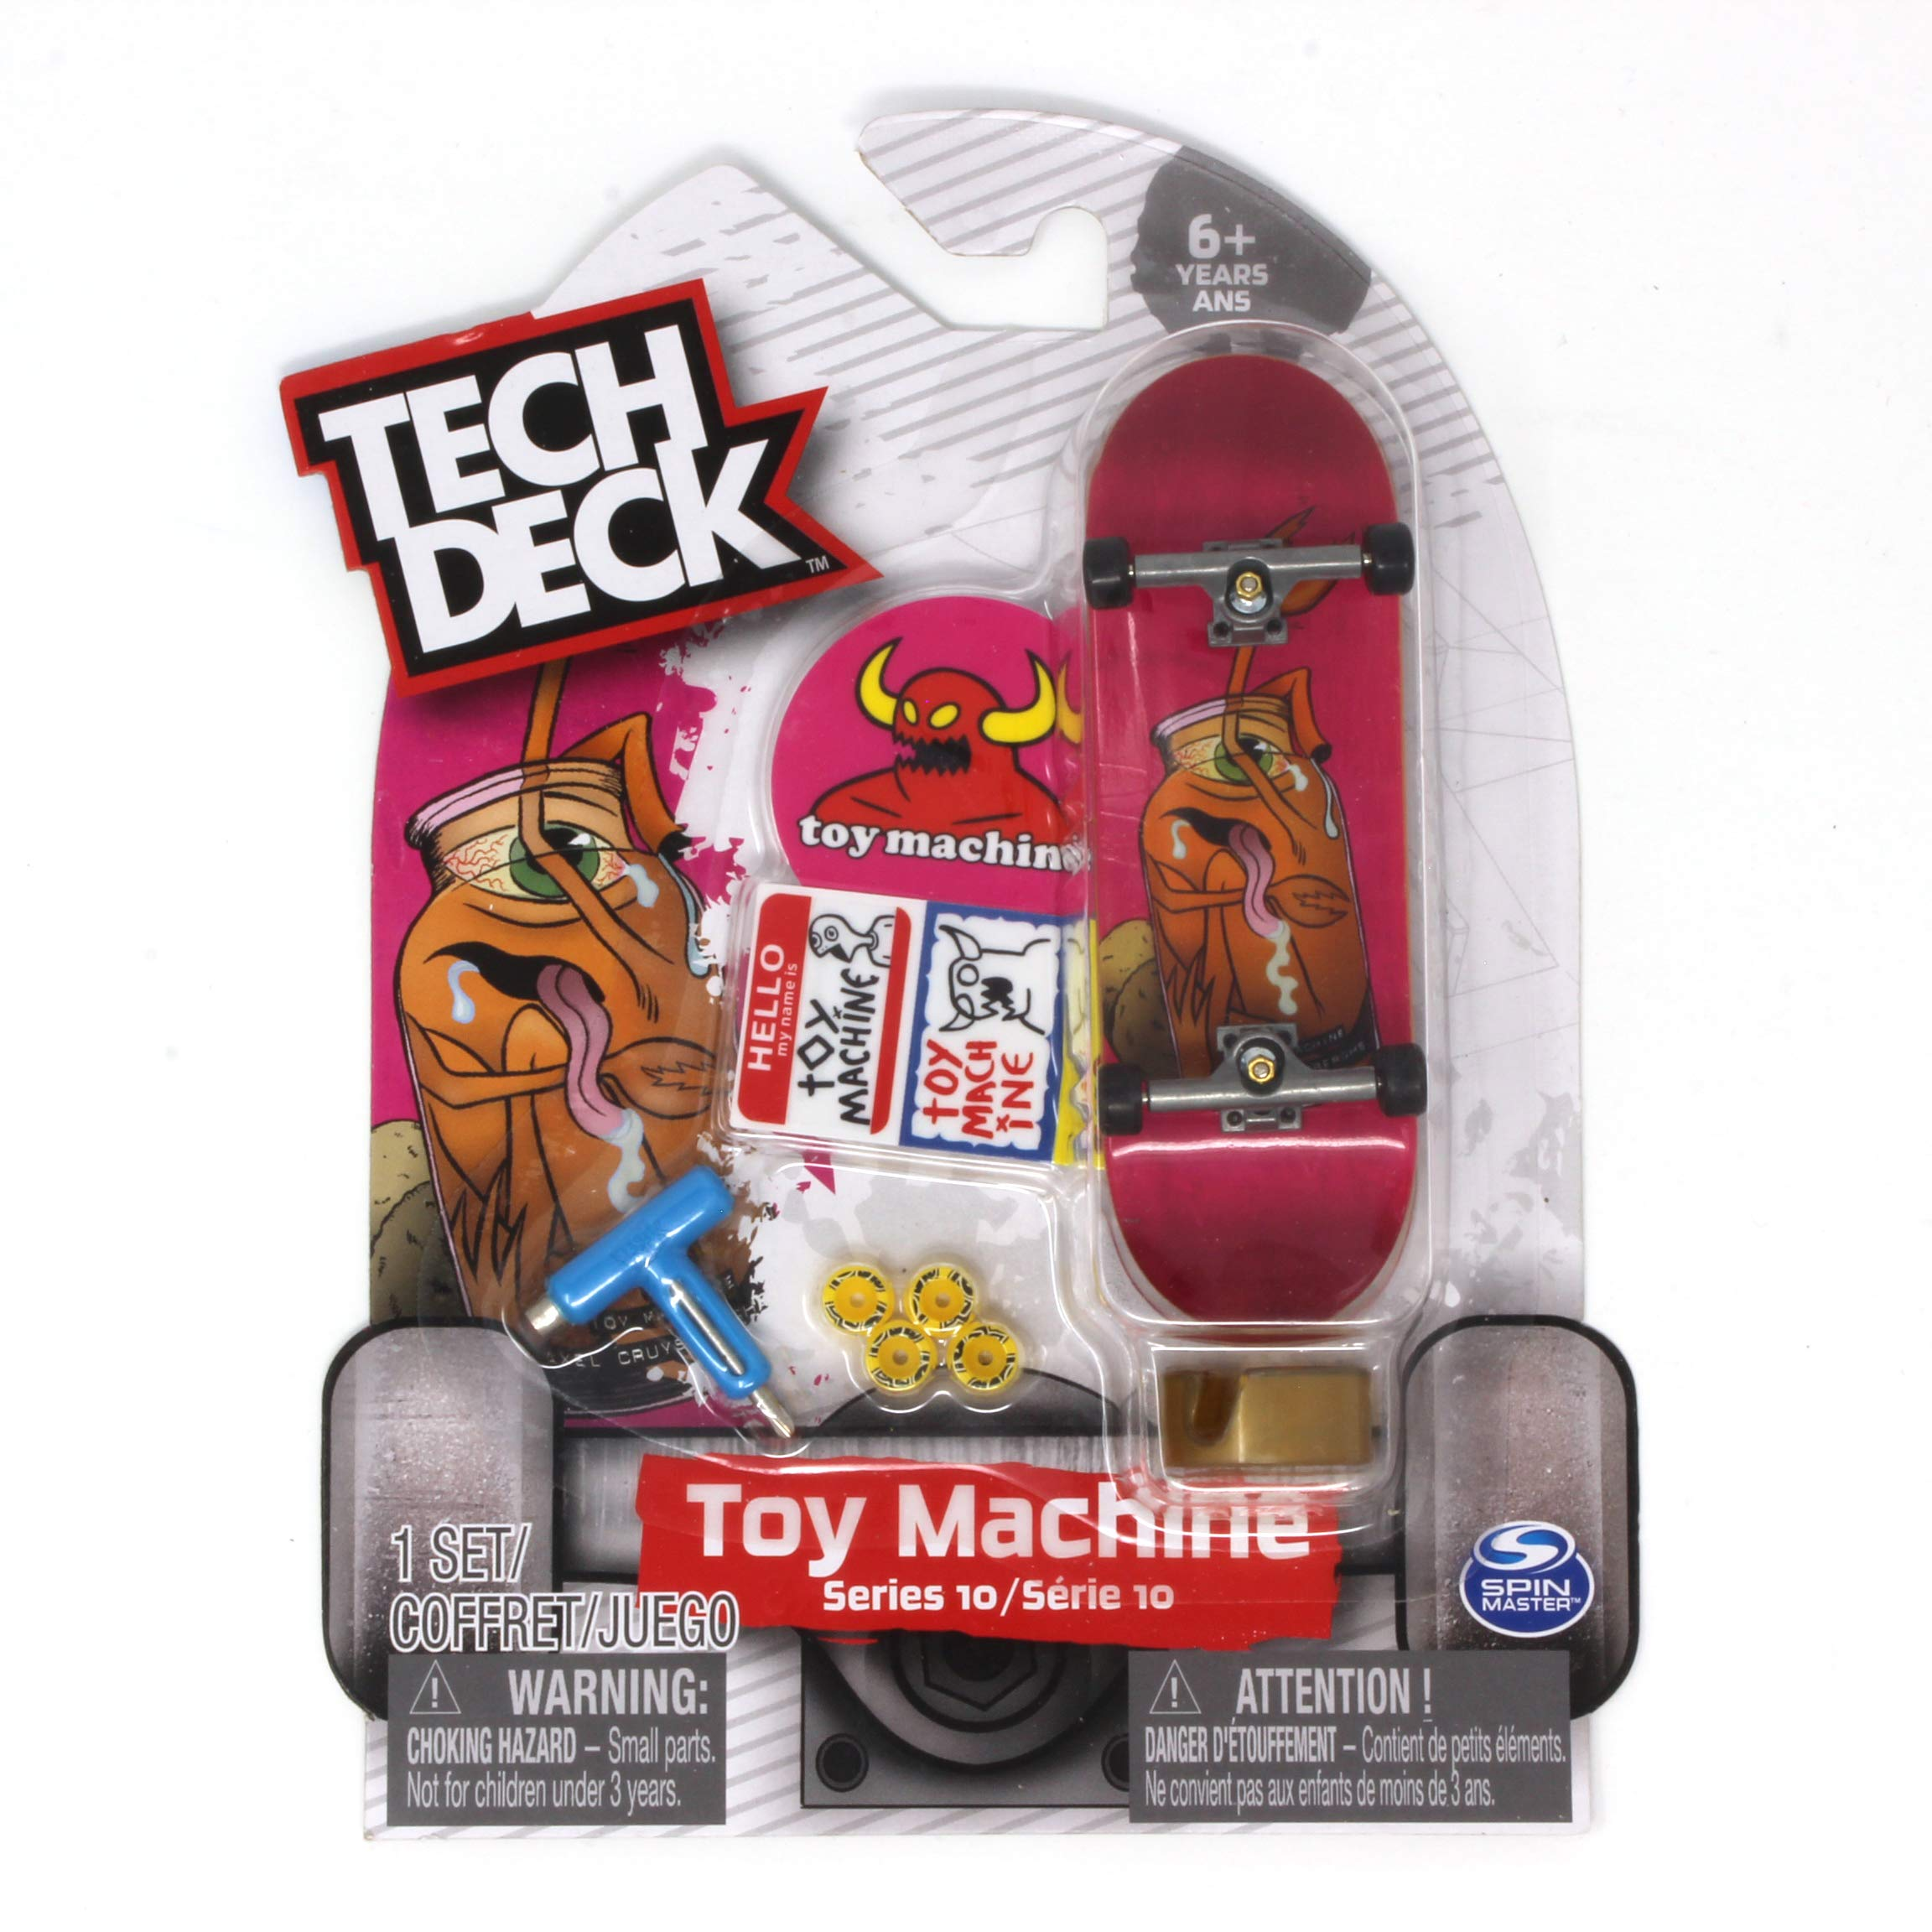 Tech Deck Toy Machine Skateboards Rare Series 10 Sect Jar Pink Fingerboard